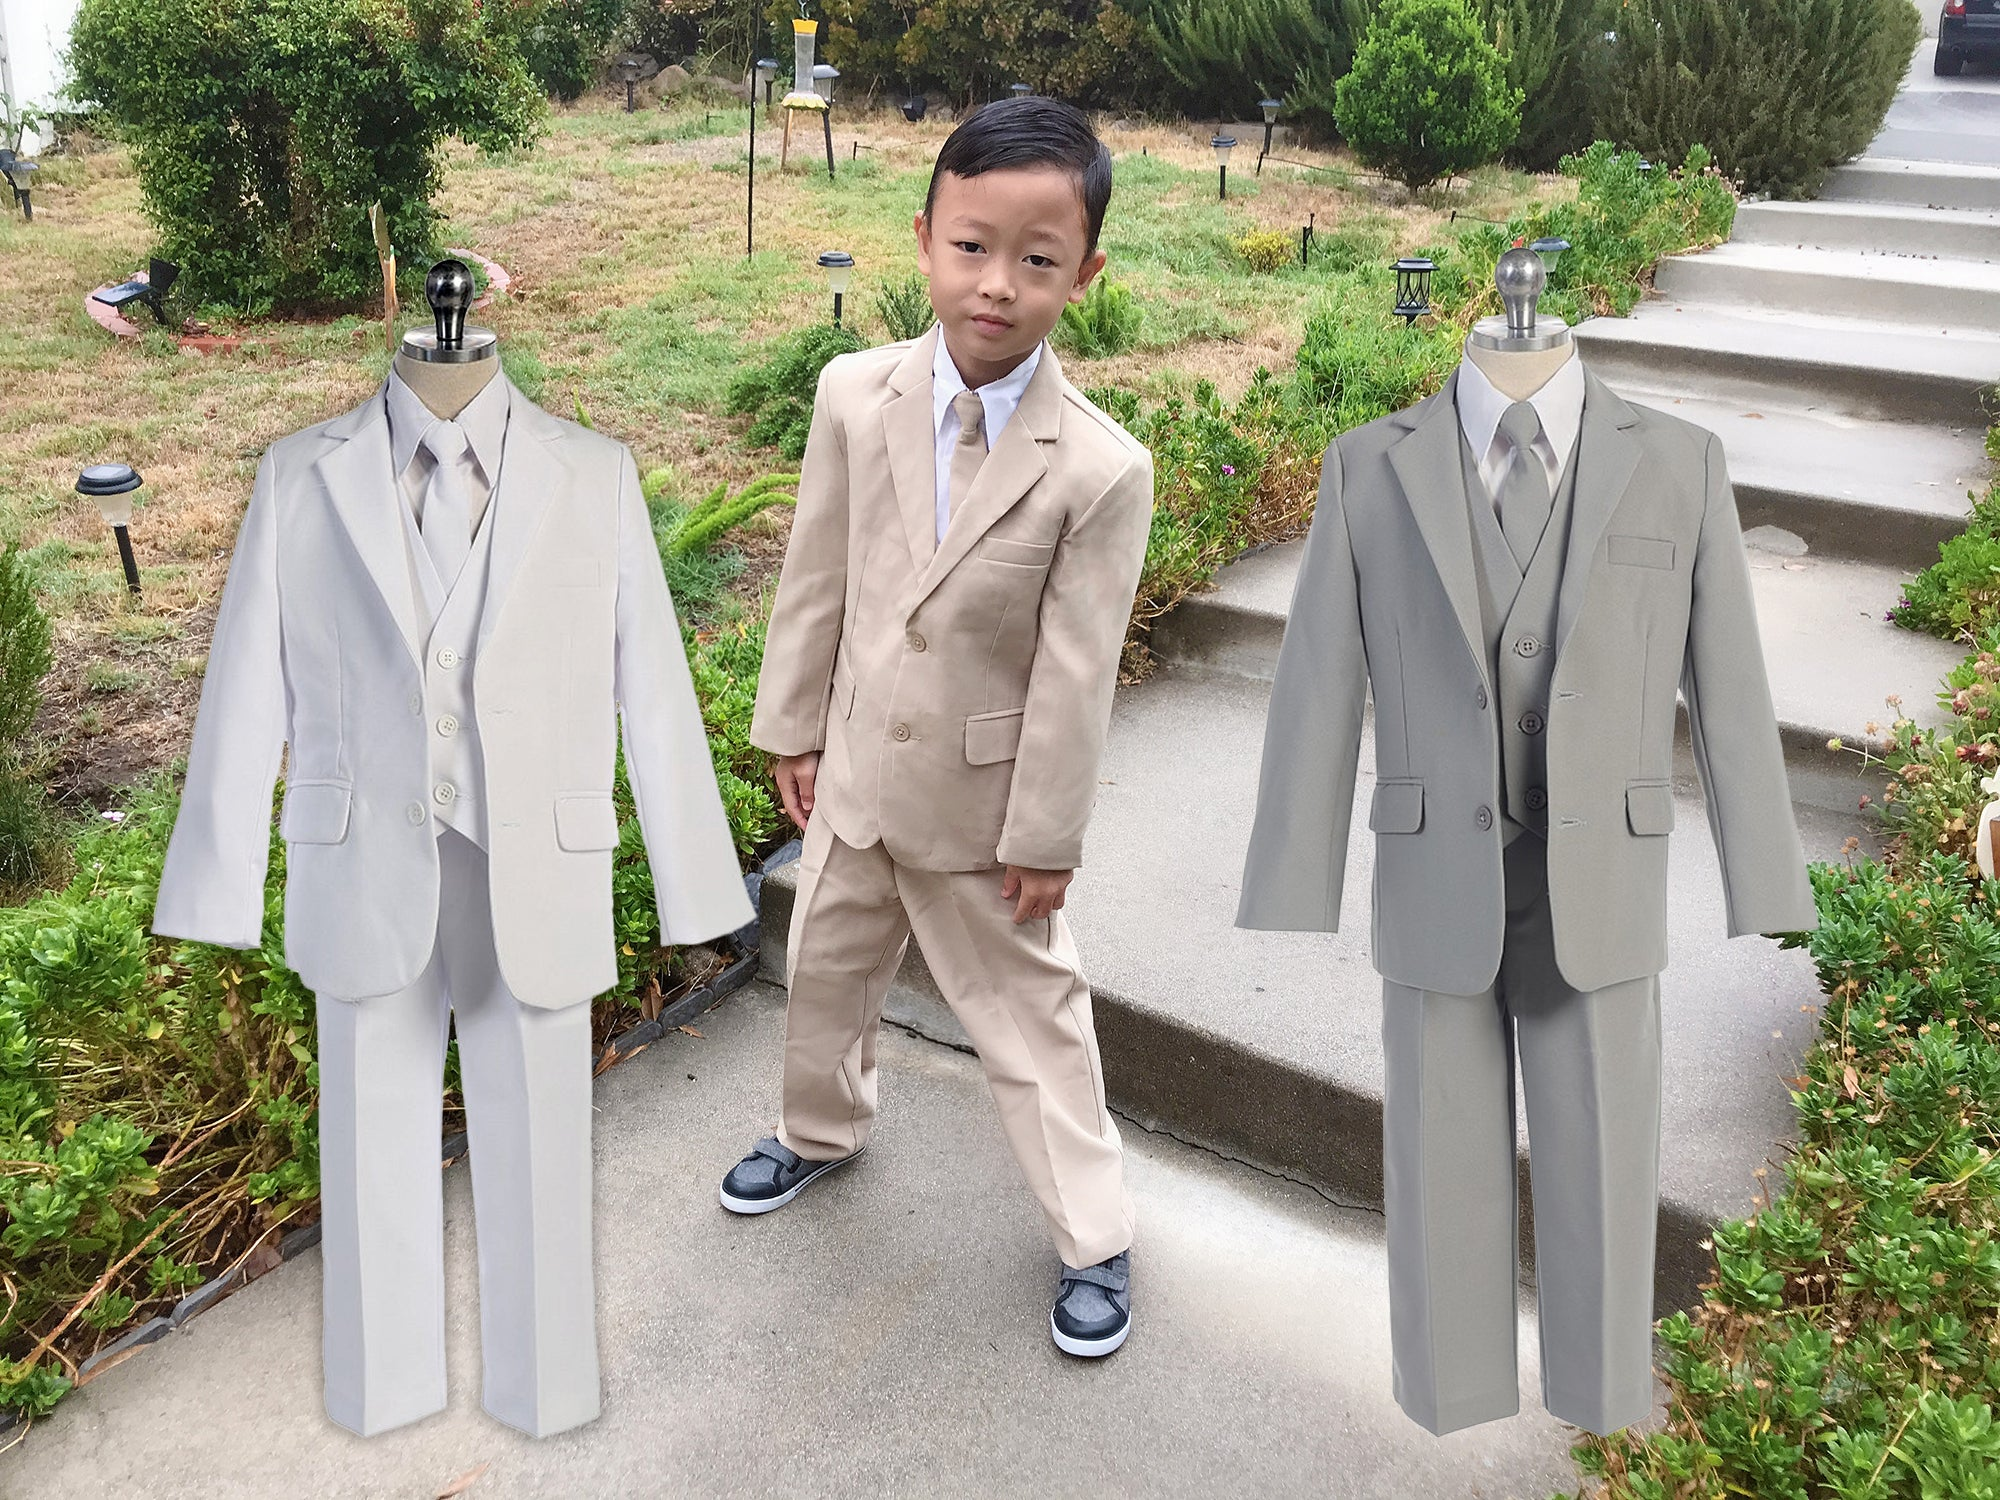 4c9a49533 Baby Toddler to Big Boy 5-Piece Suit Tuxedo, White, Gray Silver,